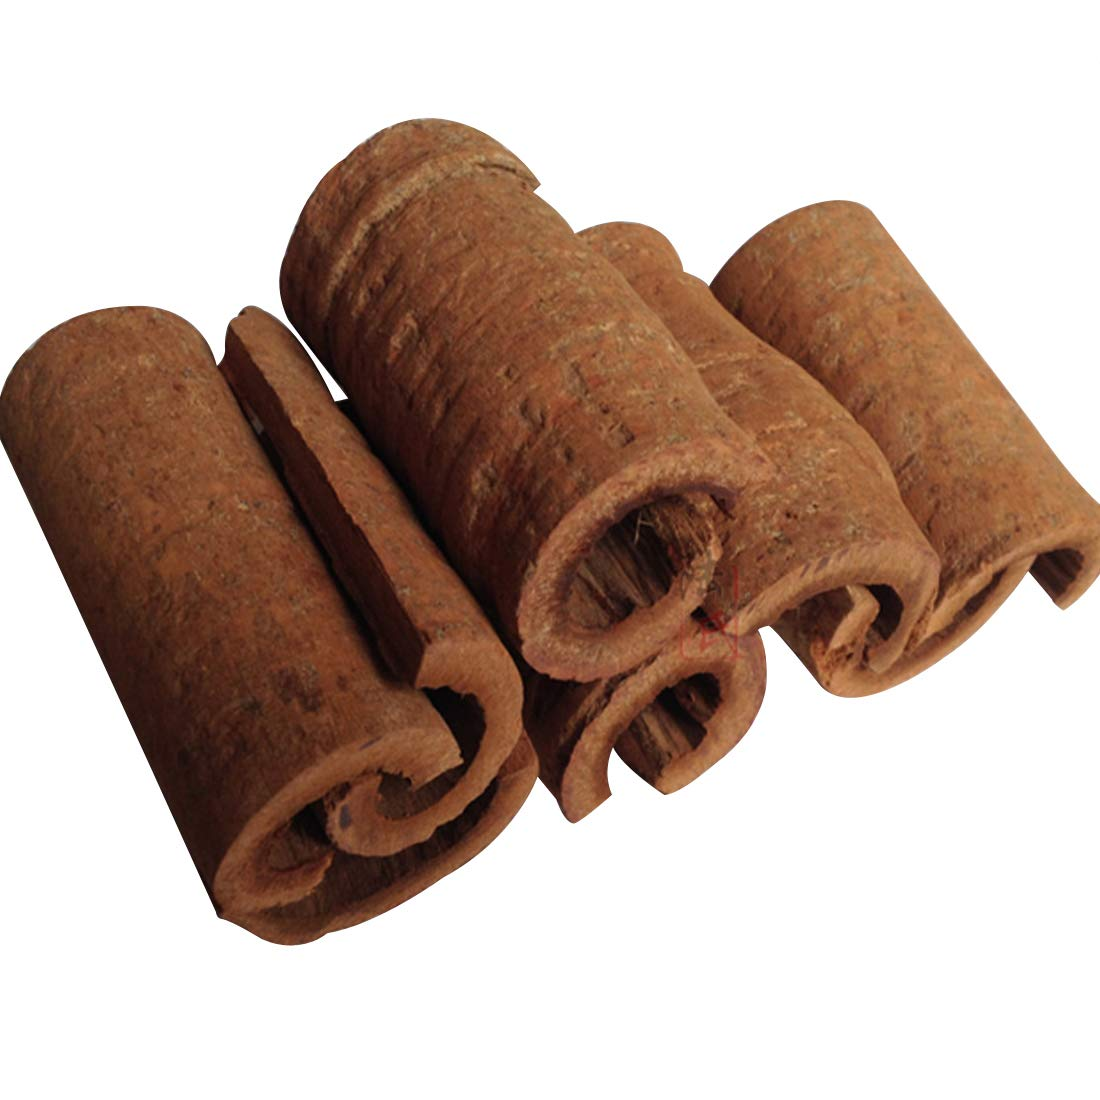 Deep mountain Chinese cinnamon sticks Perennial Cinnamon Tree Kitchen Spices 500g by Elcdtc